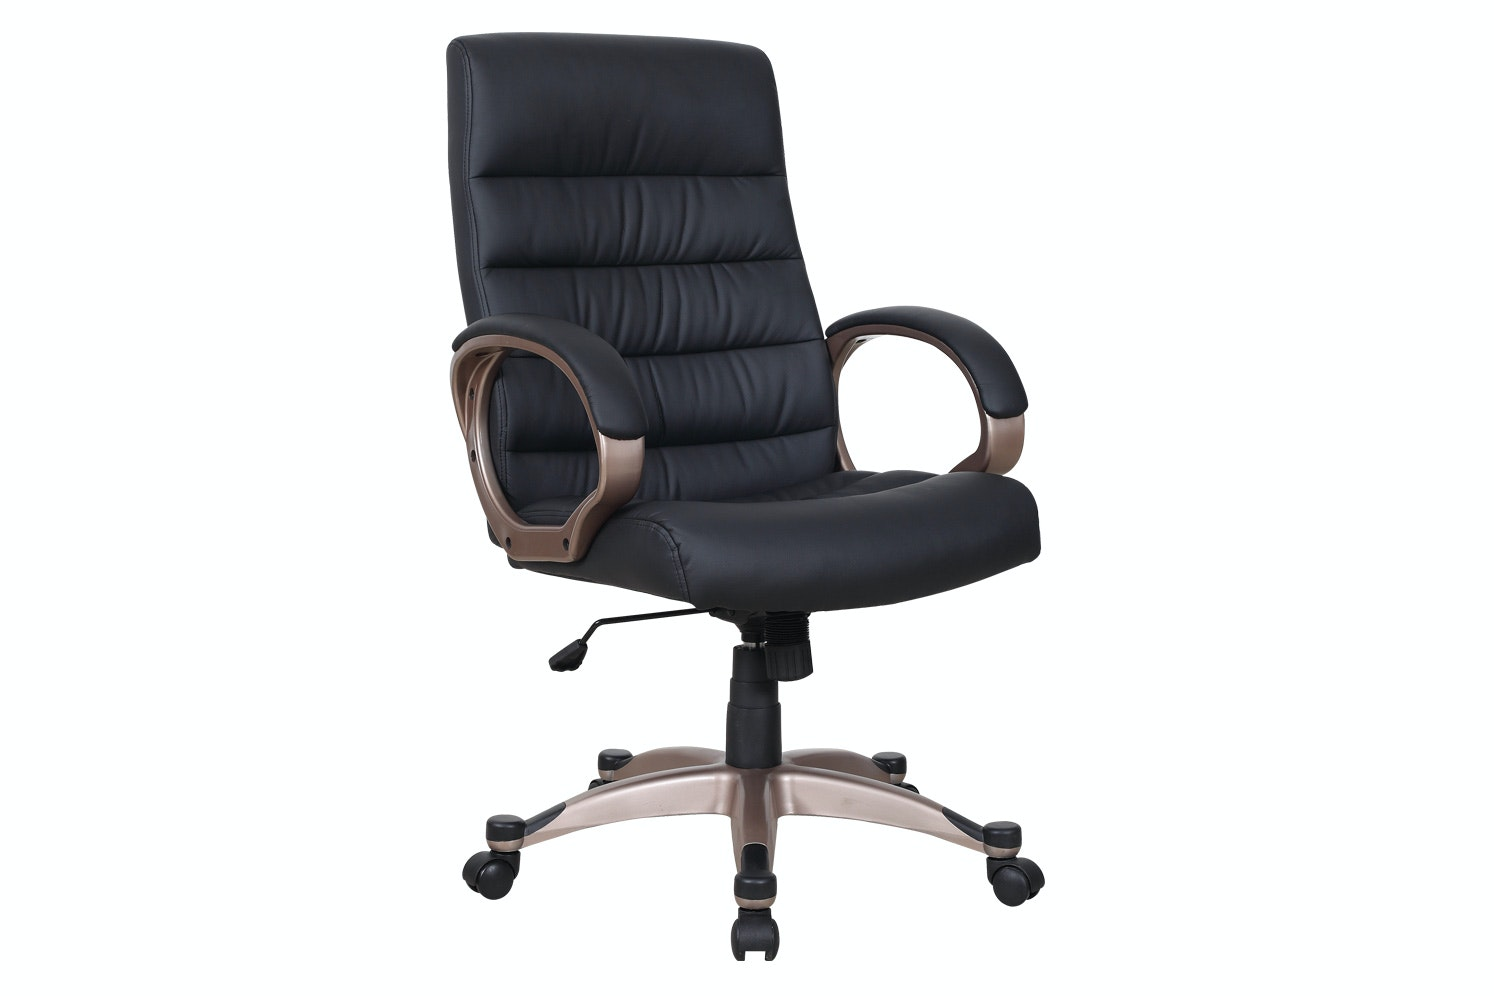 Obama Office Chair - Black